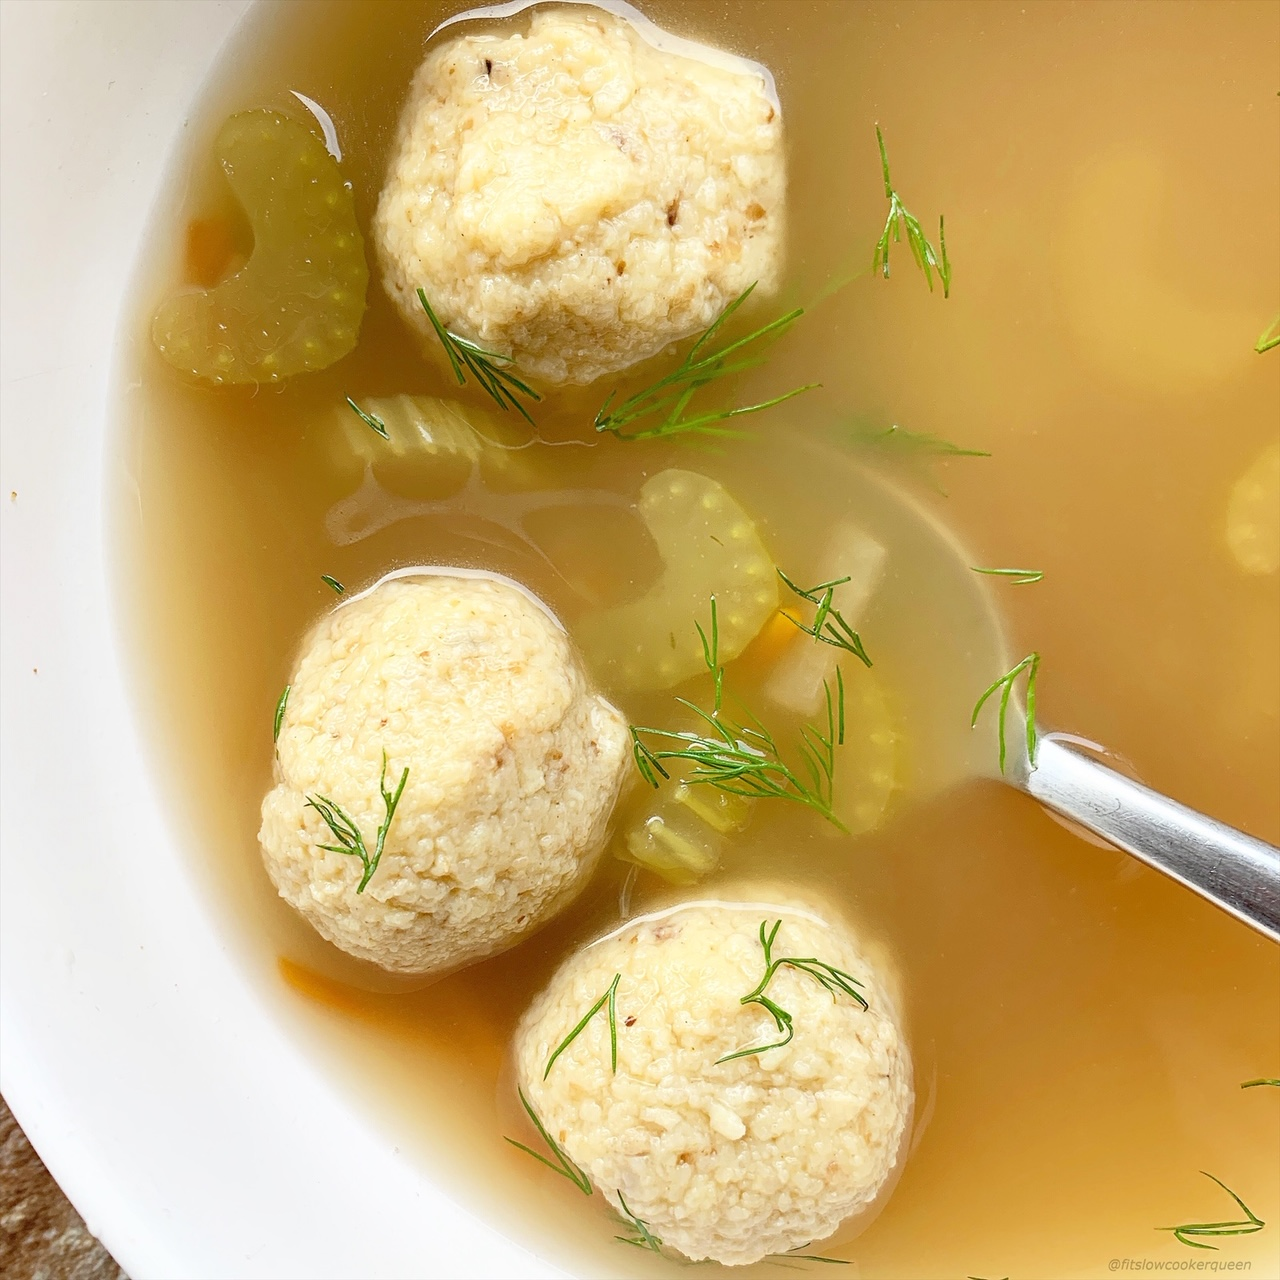 Matzo ball soup is a simple soup made from matzo meal, eggs, fat/oil, and water. Make this comforting soup in your slow cooker or Instant Pot.